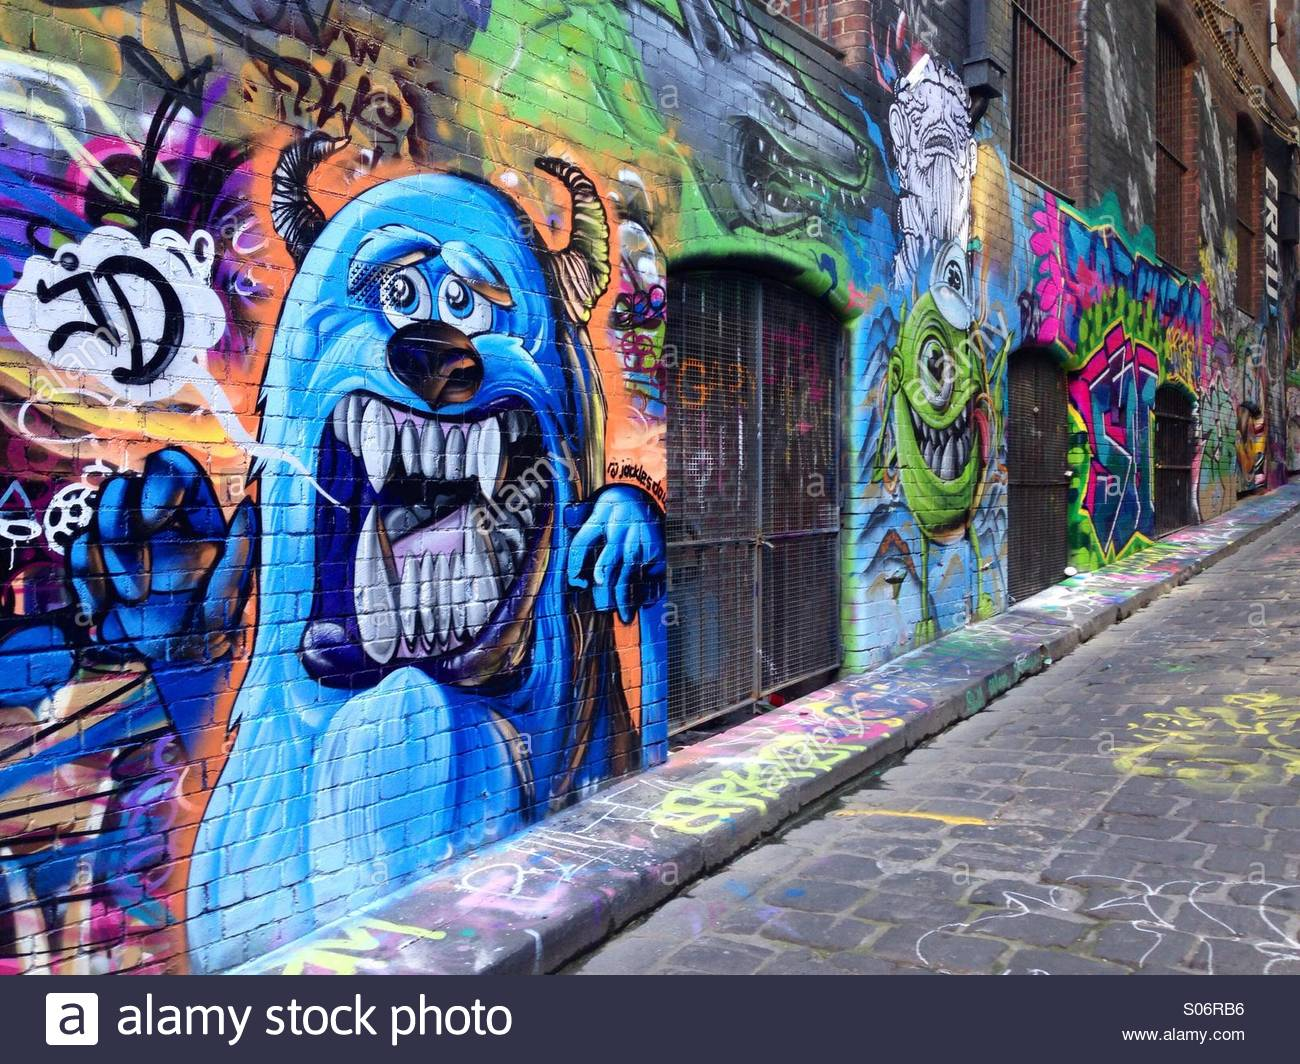 Graffiti art for sale melbourne - Hosier Lane Melbourne Grafitti Street Art Lane Way In Melbourne S Most Popular Street Art Spot Victoria